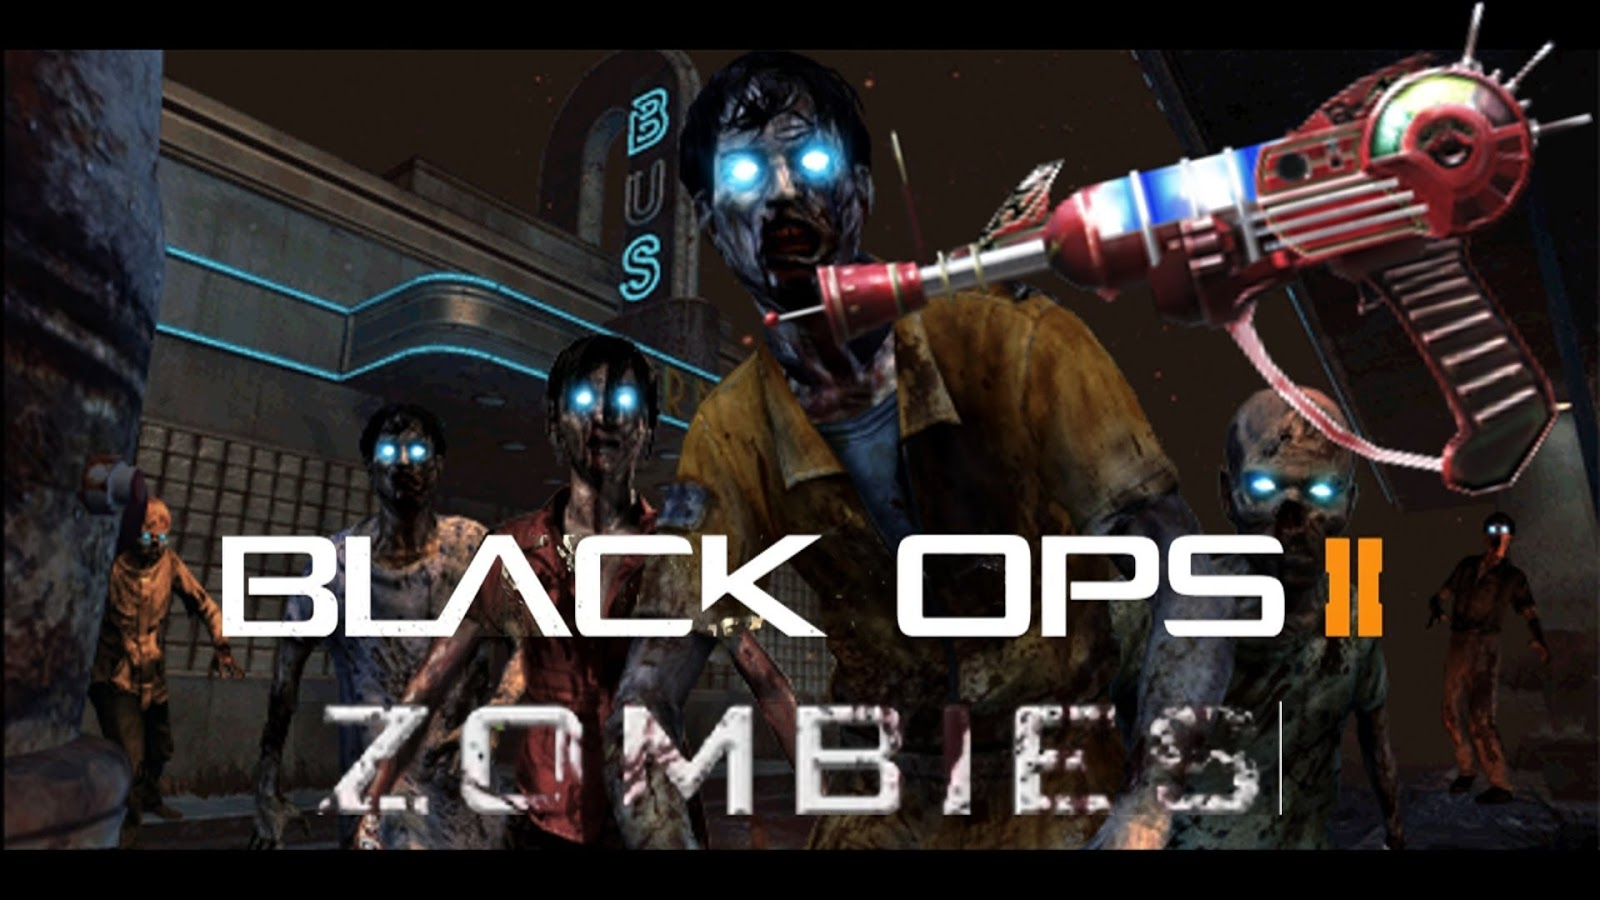 PS3] In Game Mod Call of Duty Black Ops II Zombies